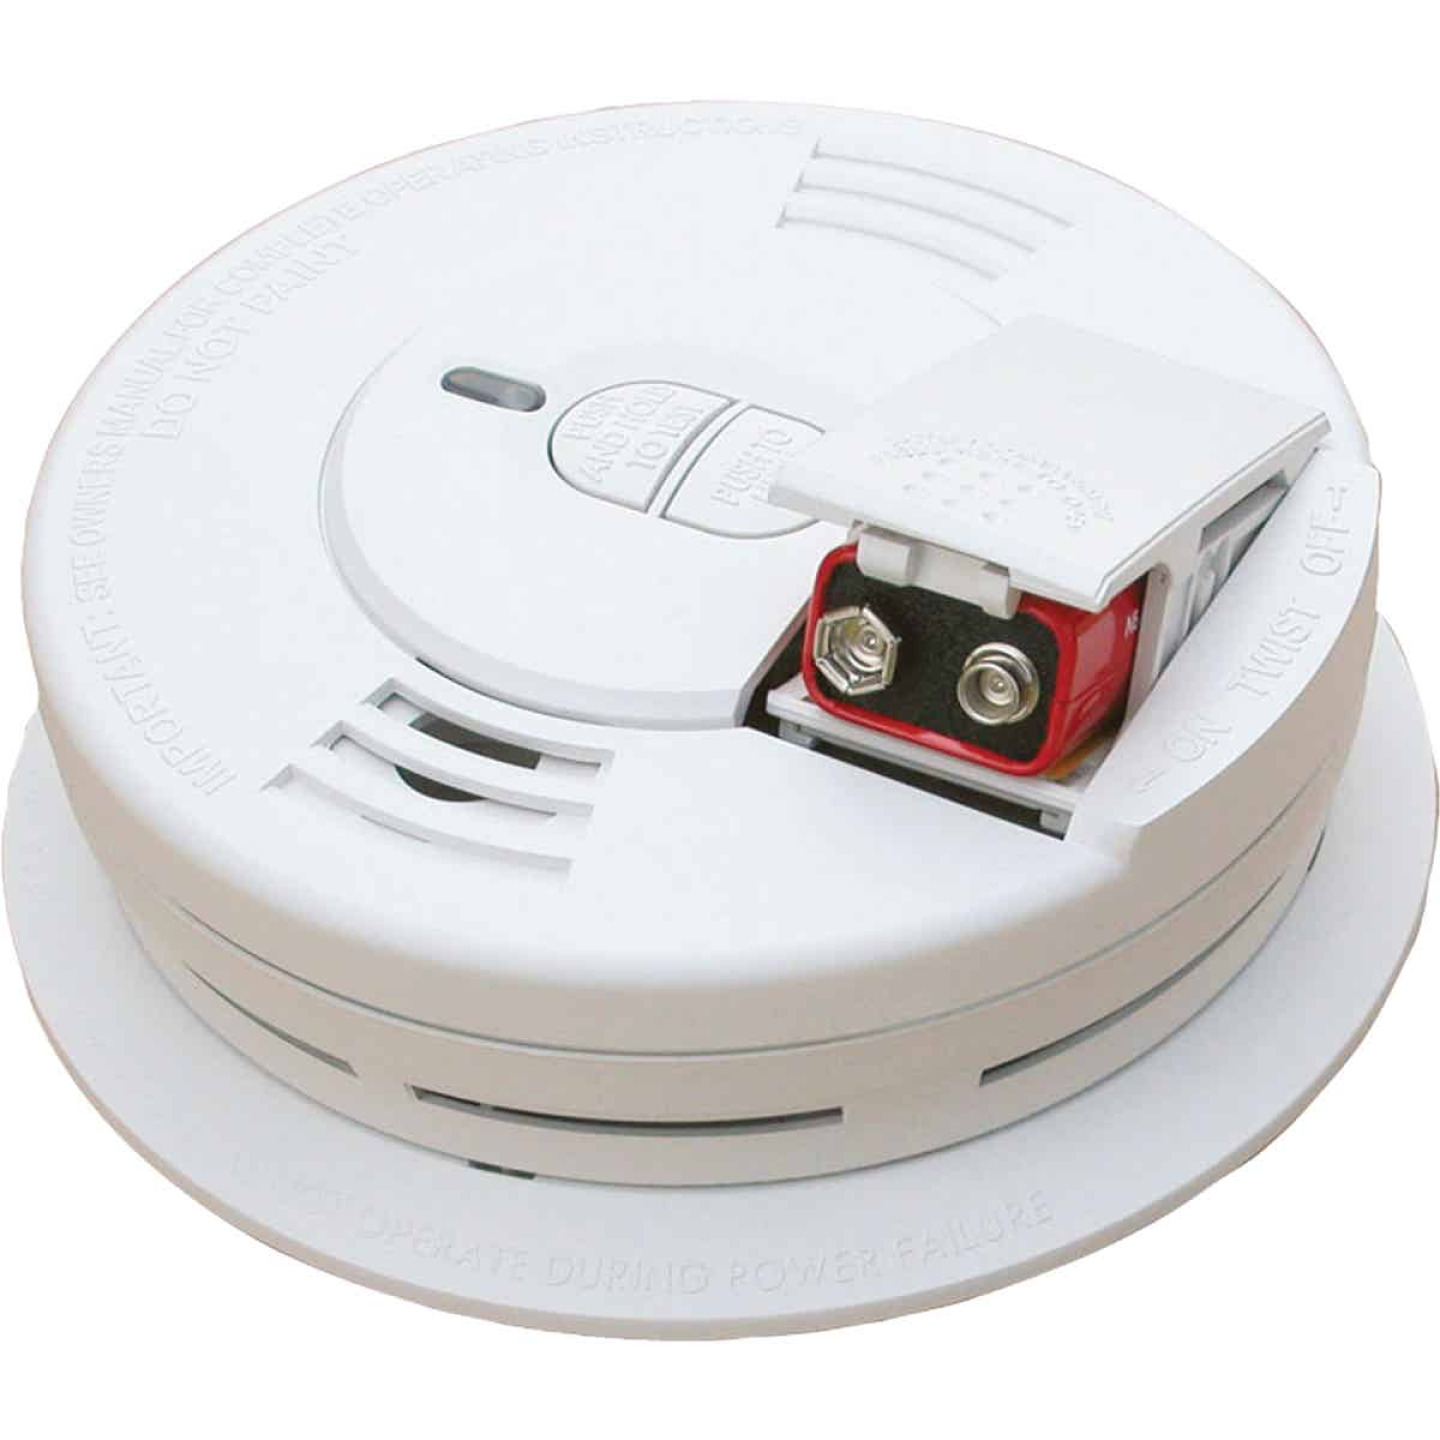 Kidde i9070 Battery Operated 9V Ionization Smoke Alarm Image 1